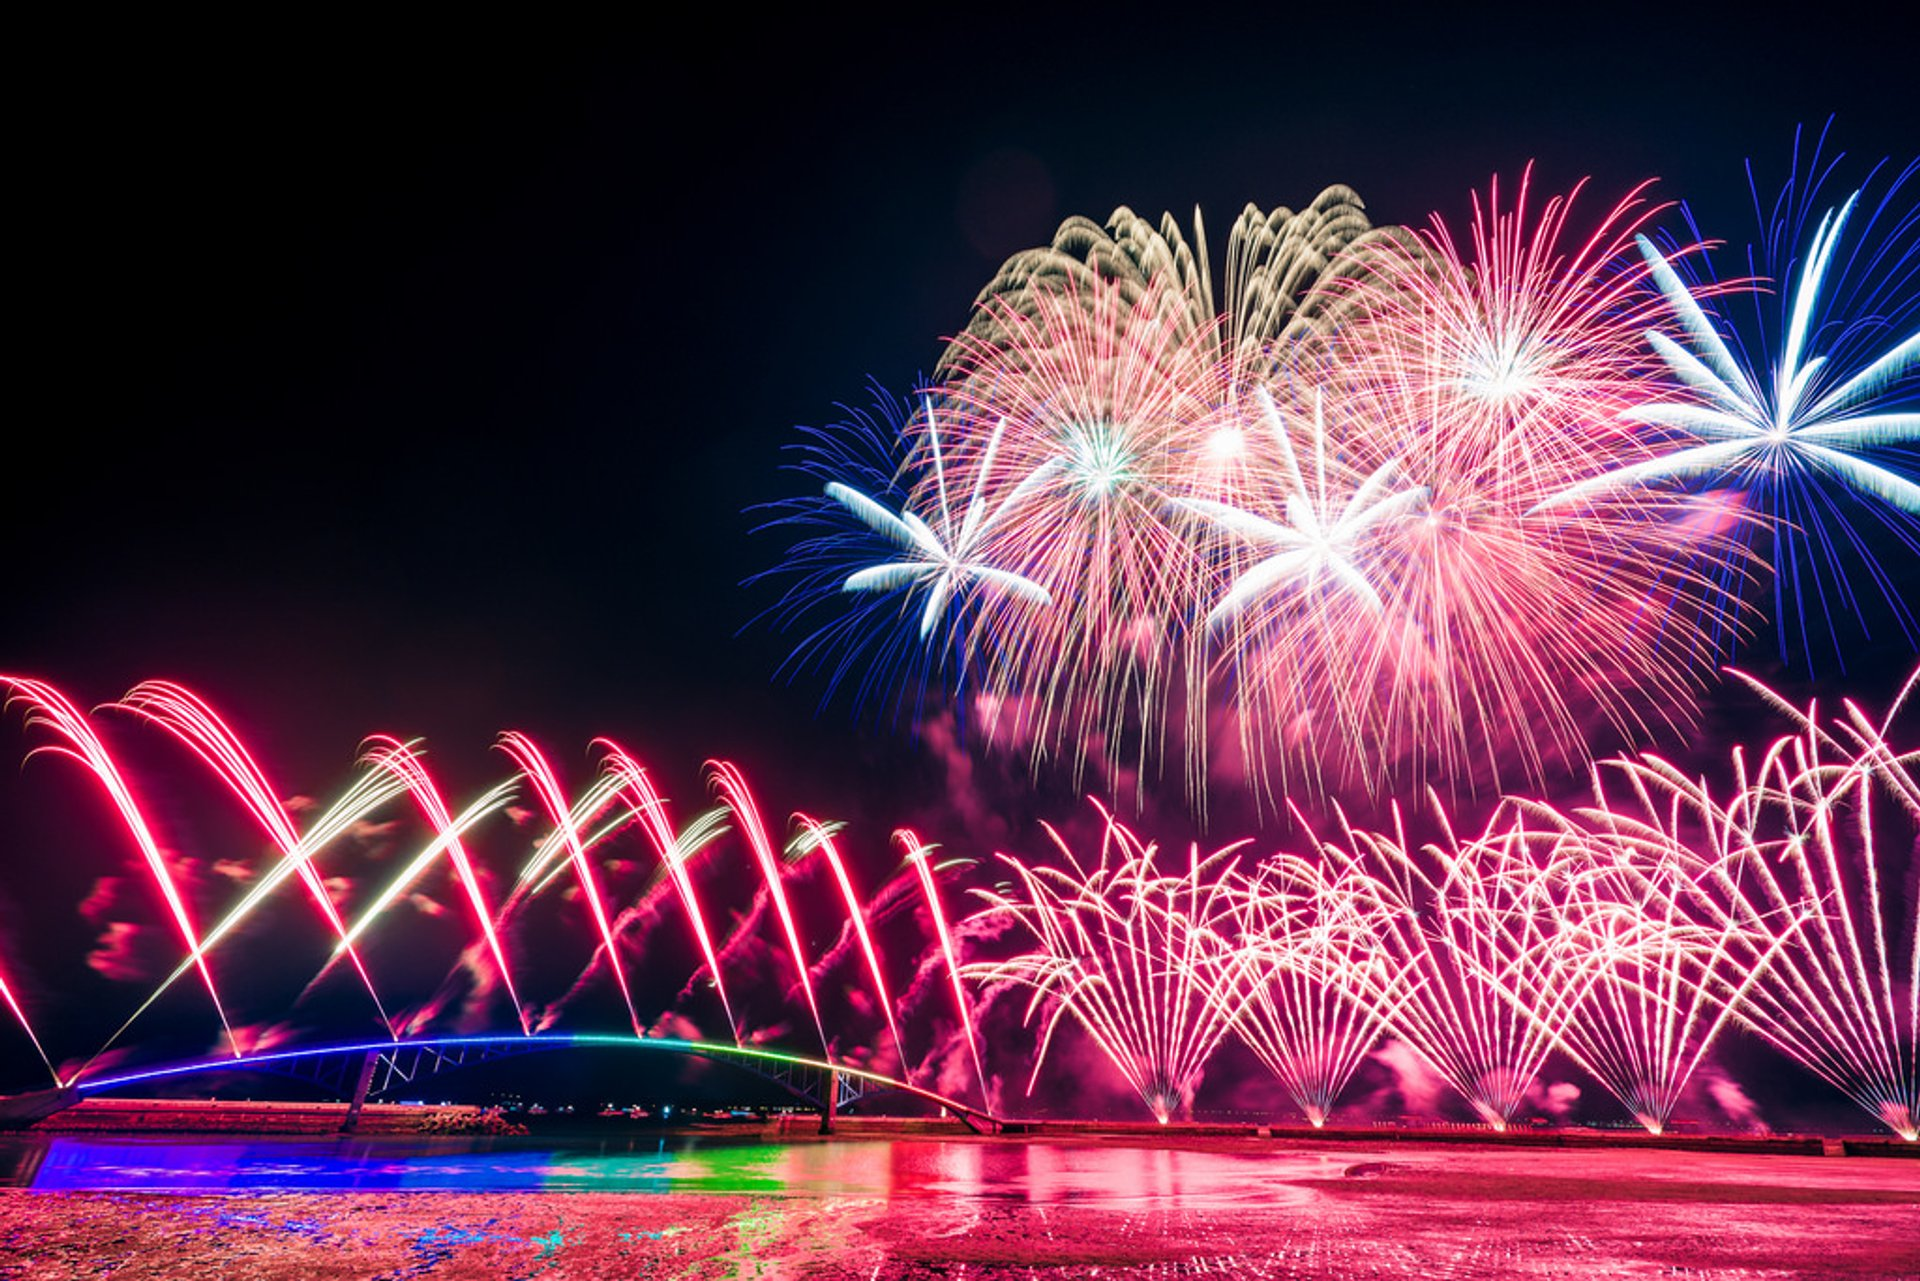 Penghu Fireworks Festival in Taiwan 2019 - Best Time